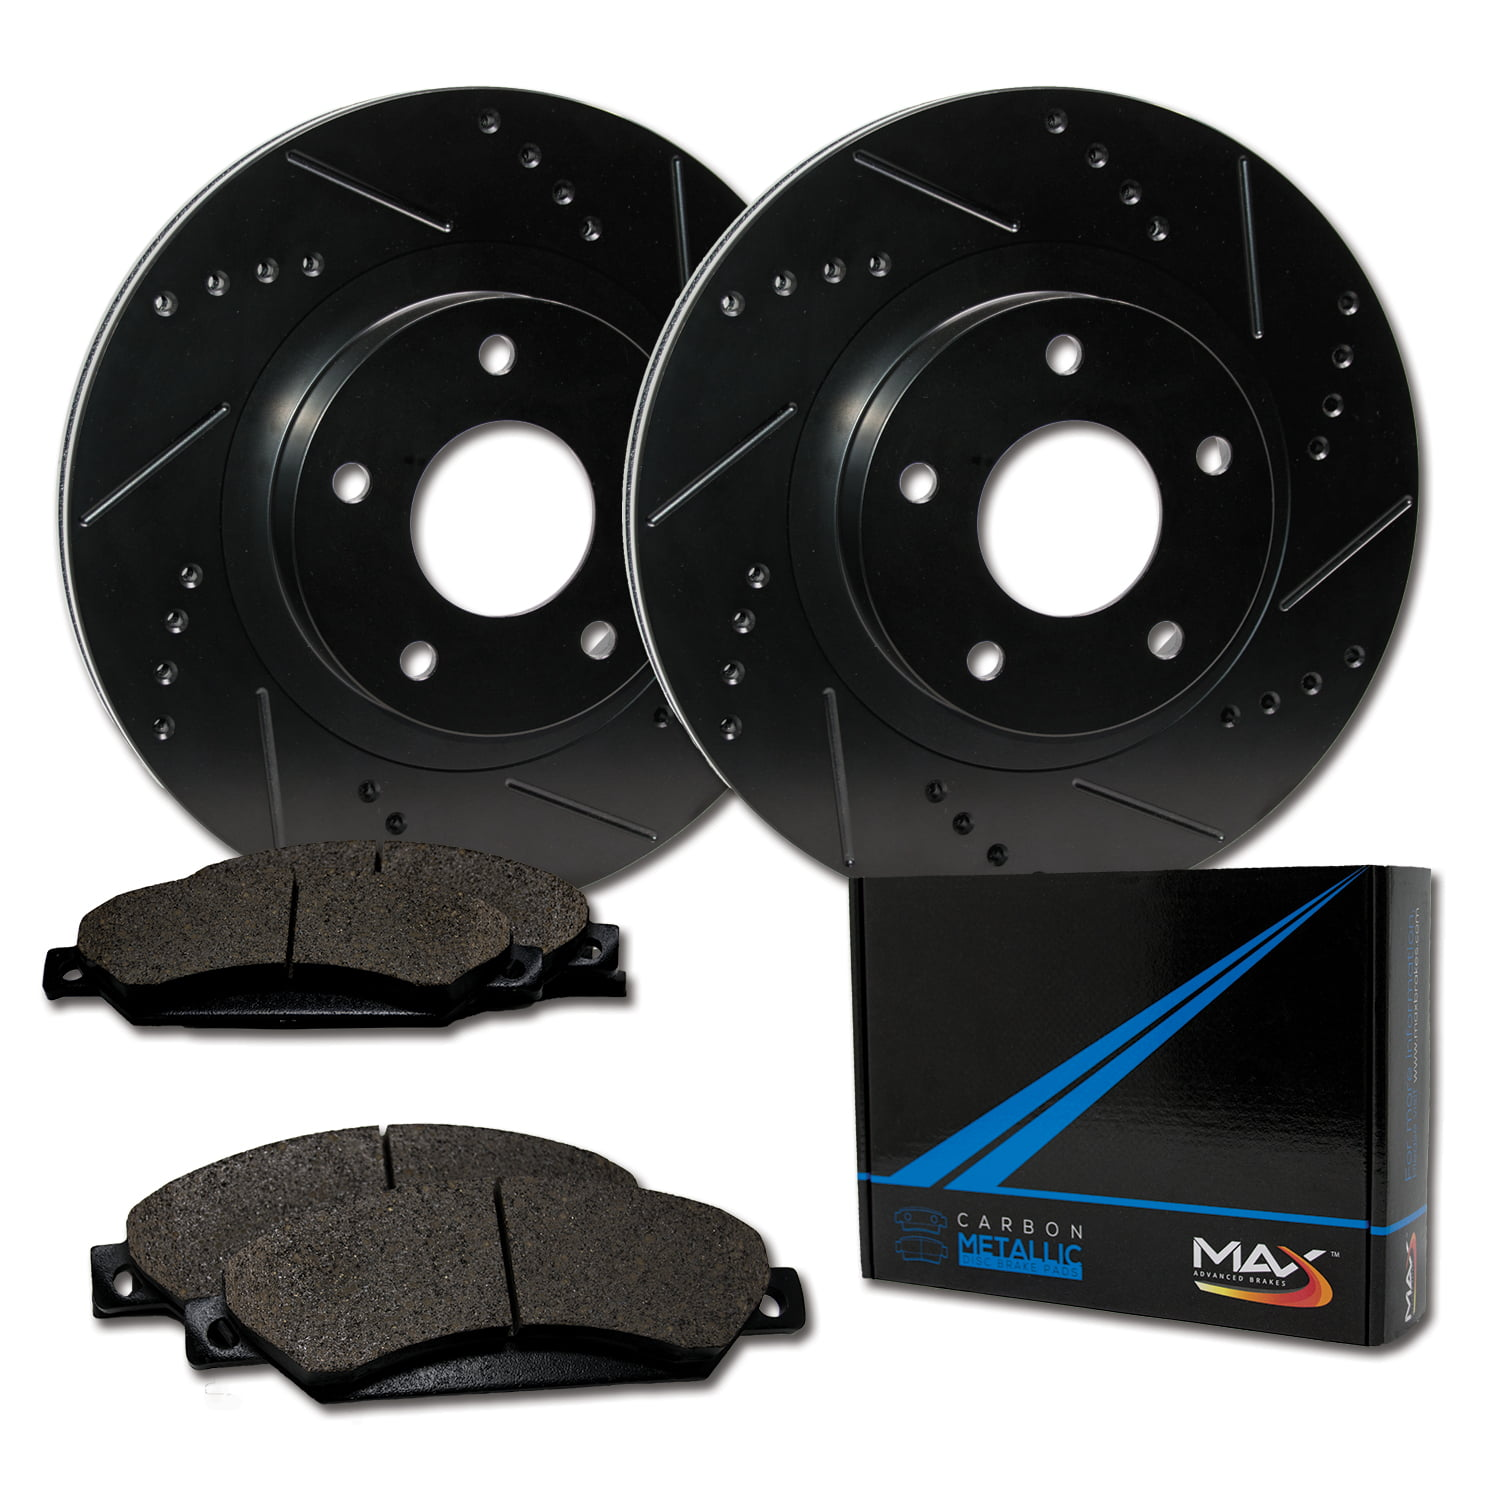 2010 2011 2012 2013 GMC Terrain Max Performance Ceramic Brake Pads F+R Motors Car & Truck Brakes & Brake Parts